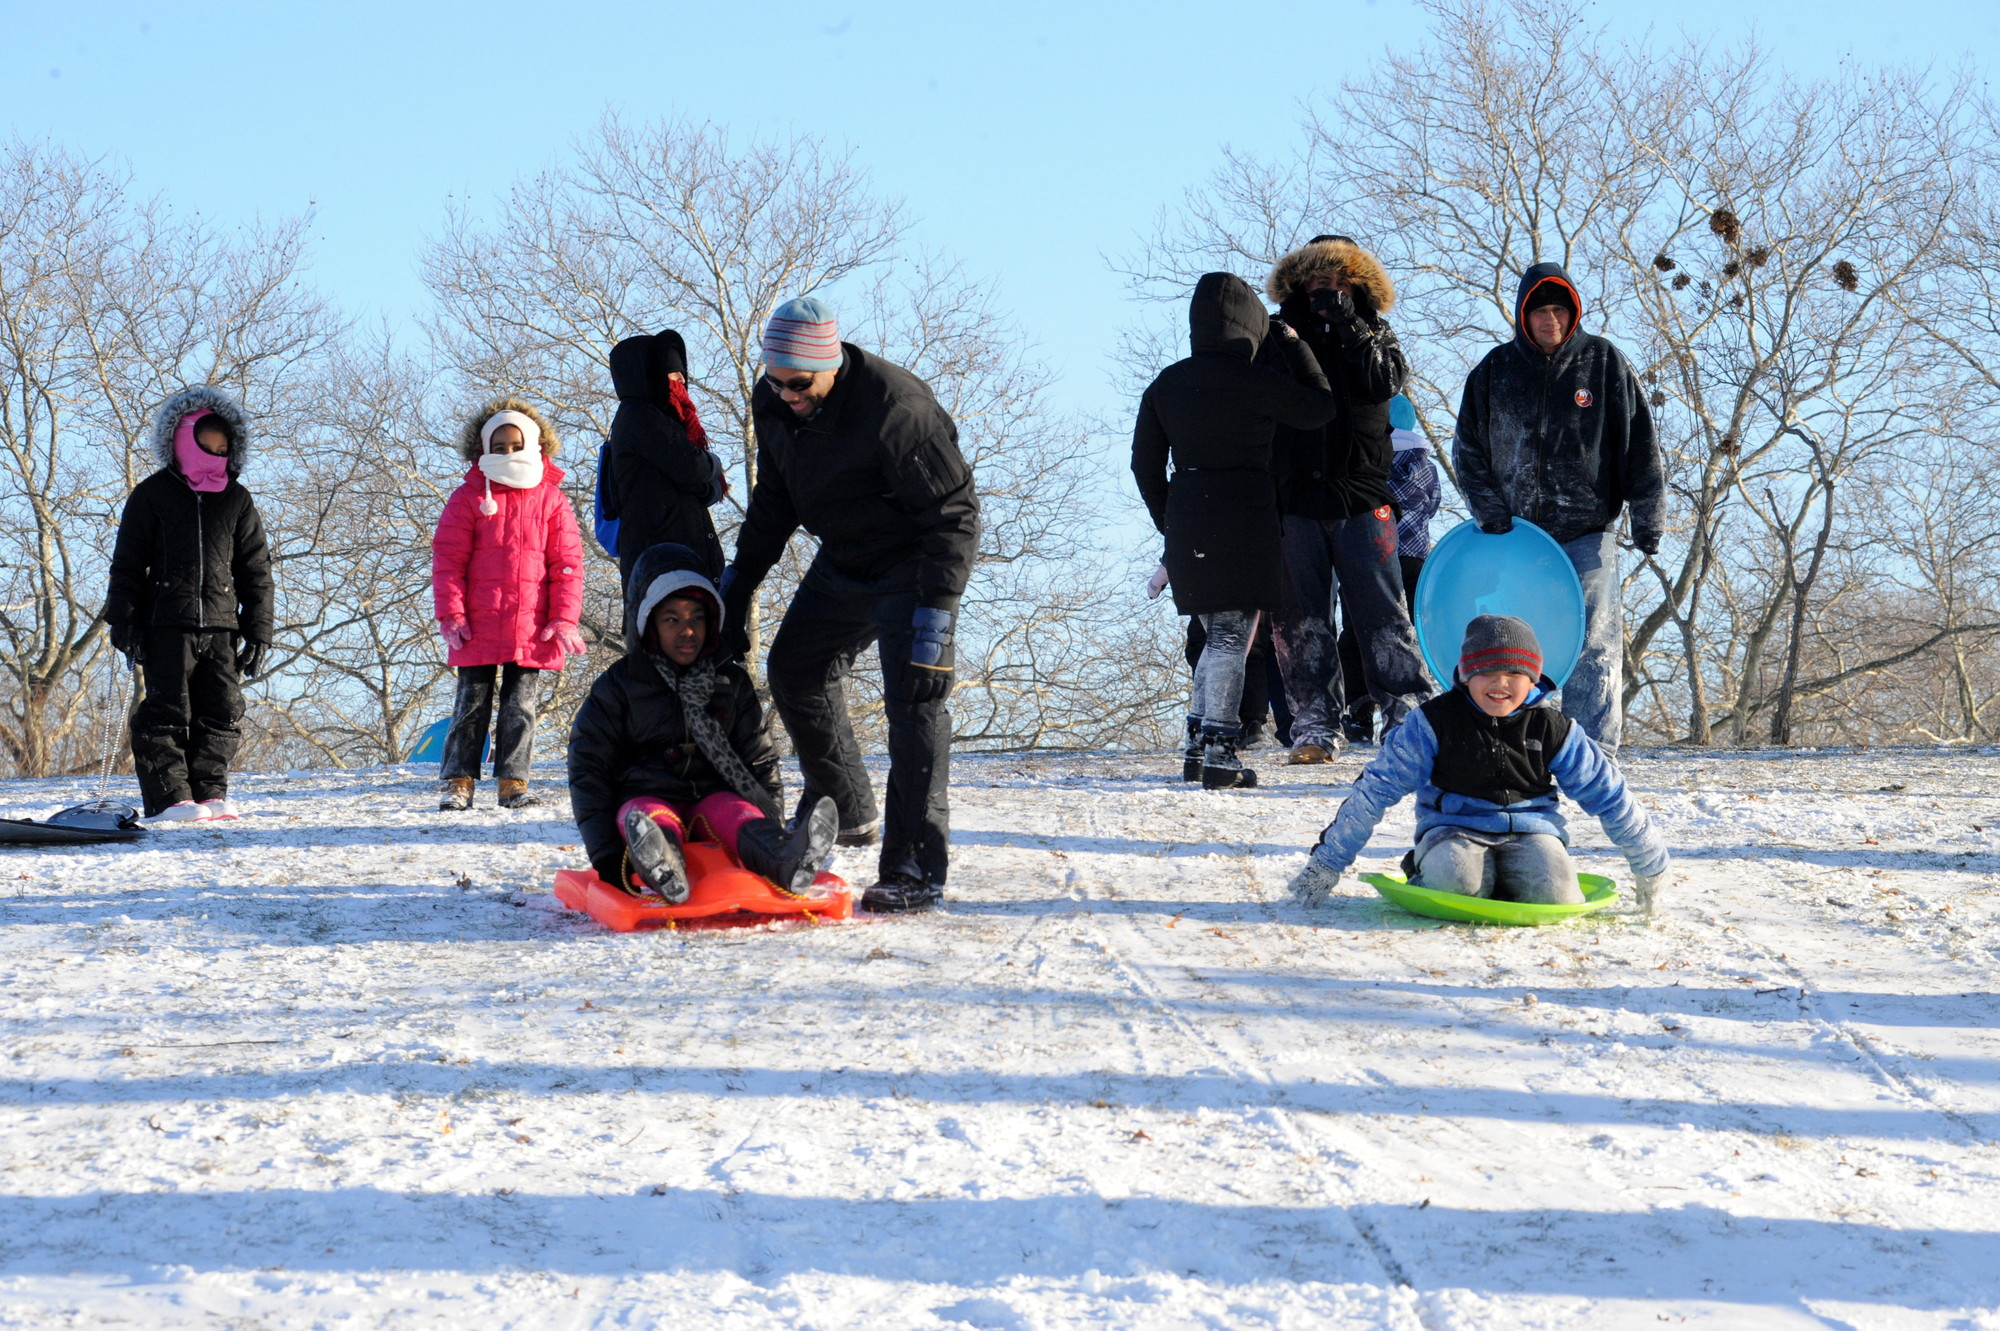 A hilly area near Harry Chapin Lakeside Theatre was the popular spot for sledding last week.